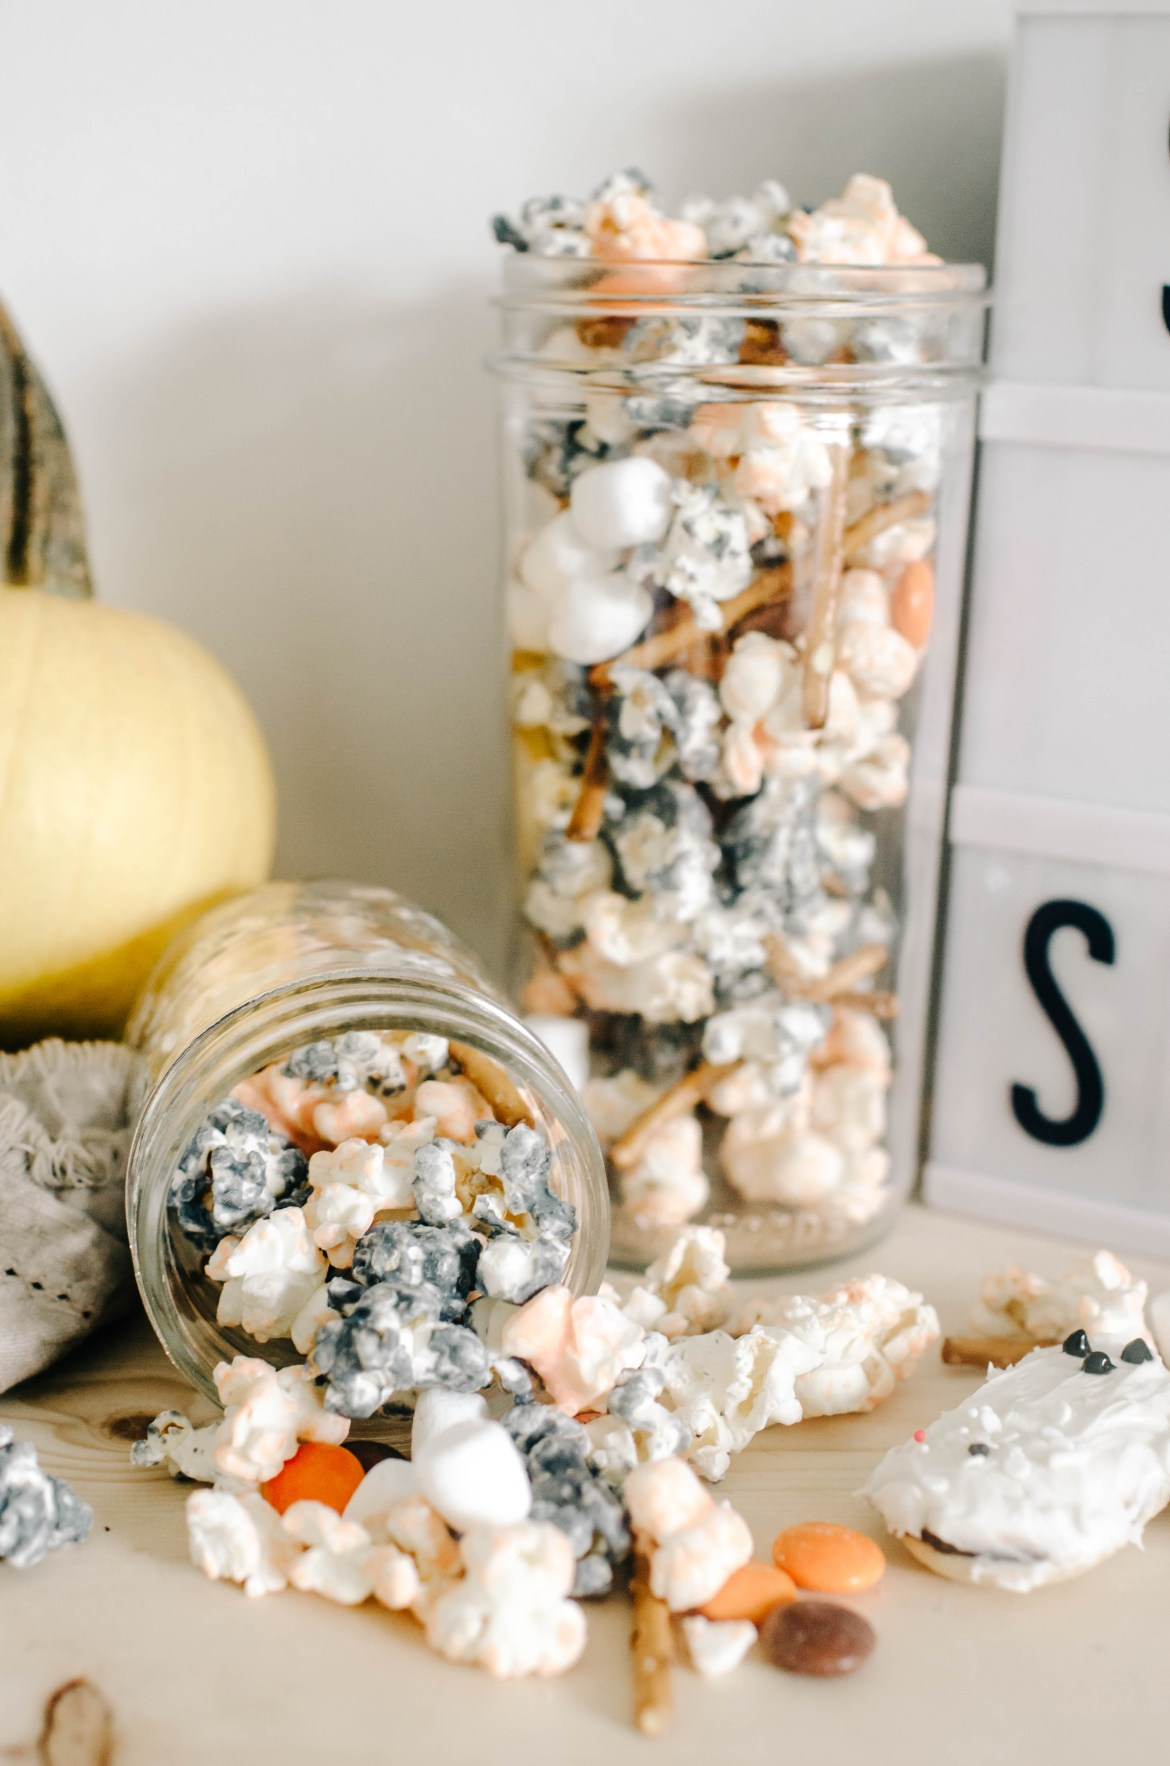 Ghosts & Ghouls Popcorn | 10 Simple Halloween Decor Ideas, DIY Crafts & Recipes